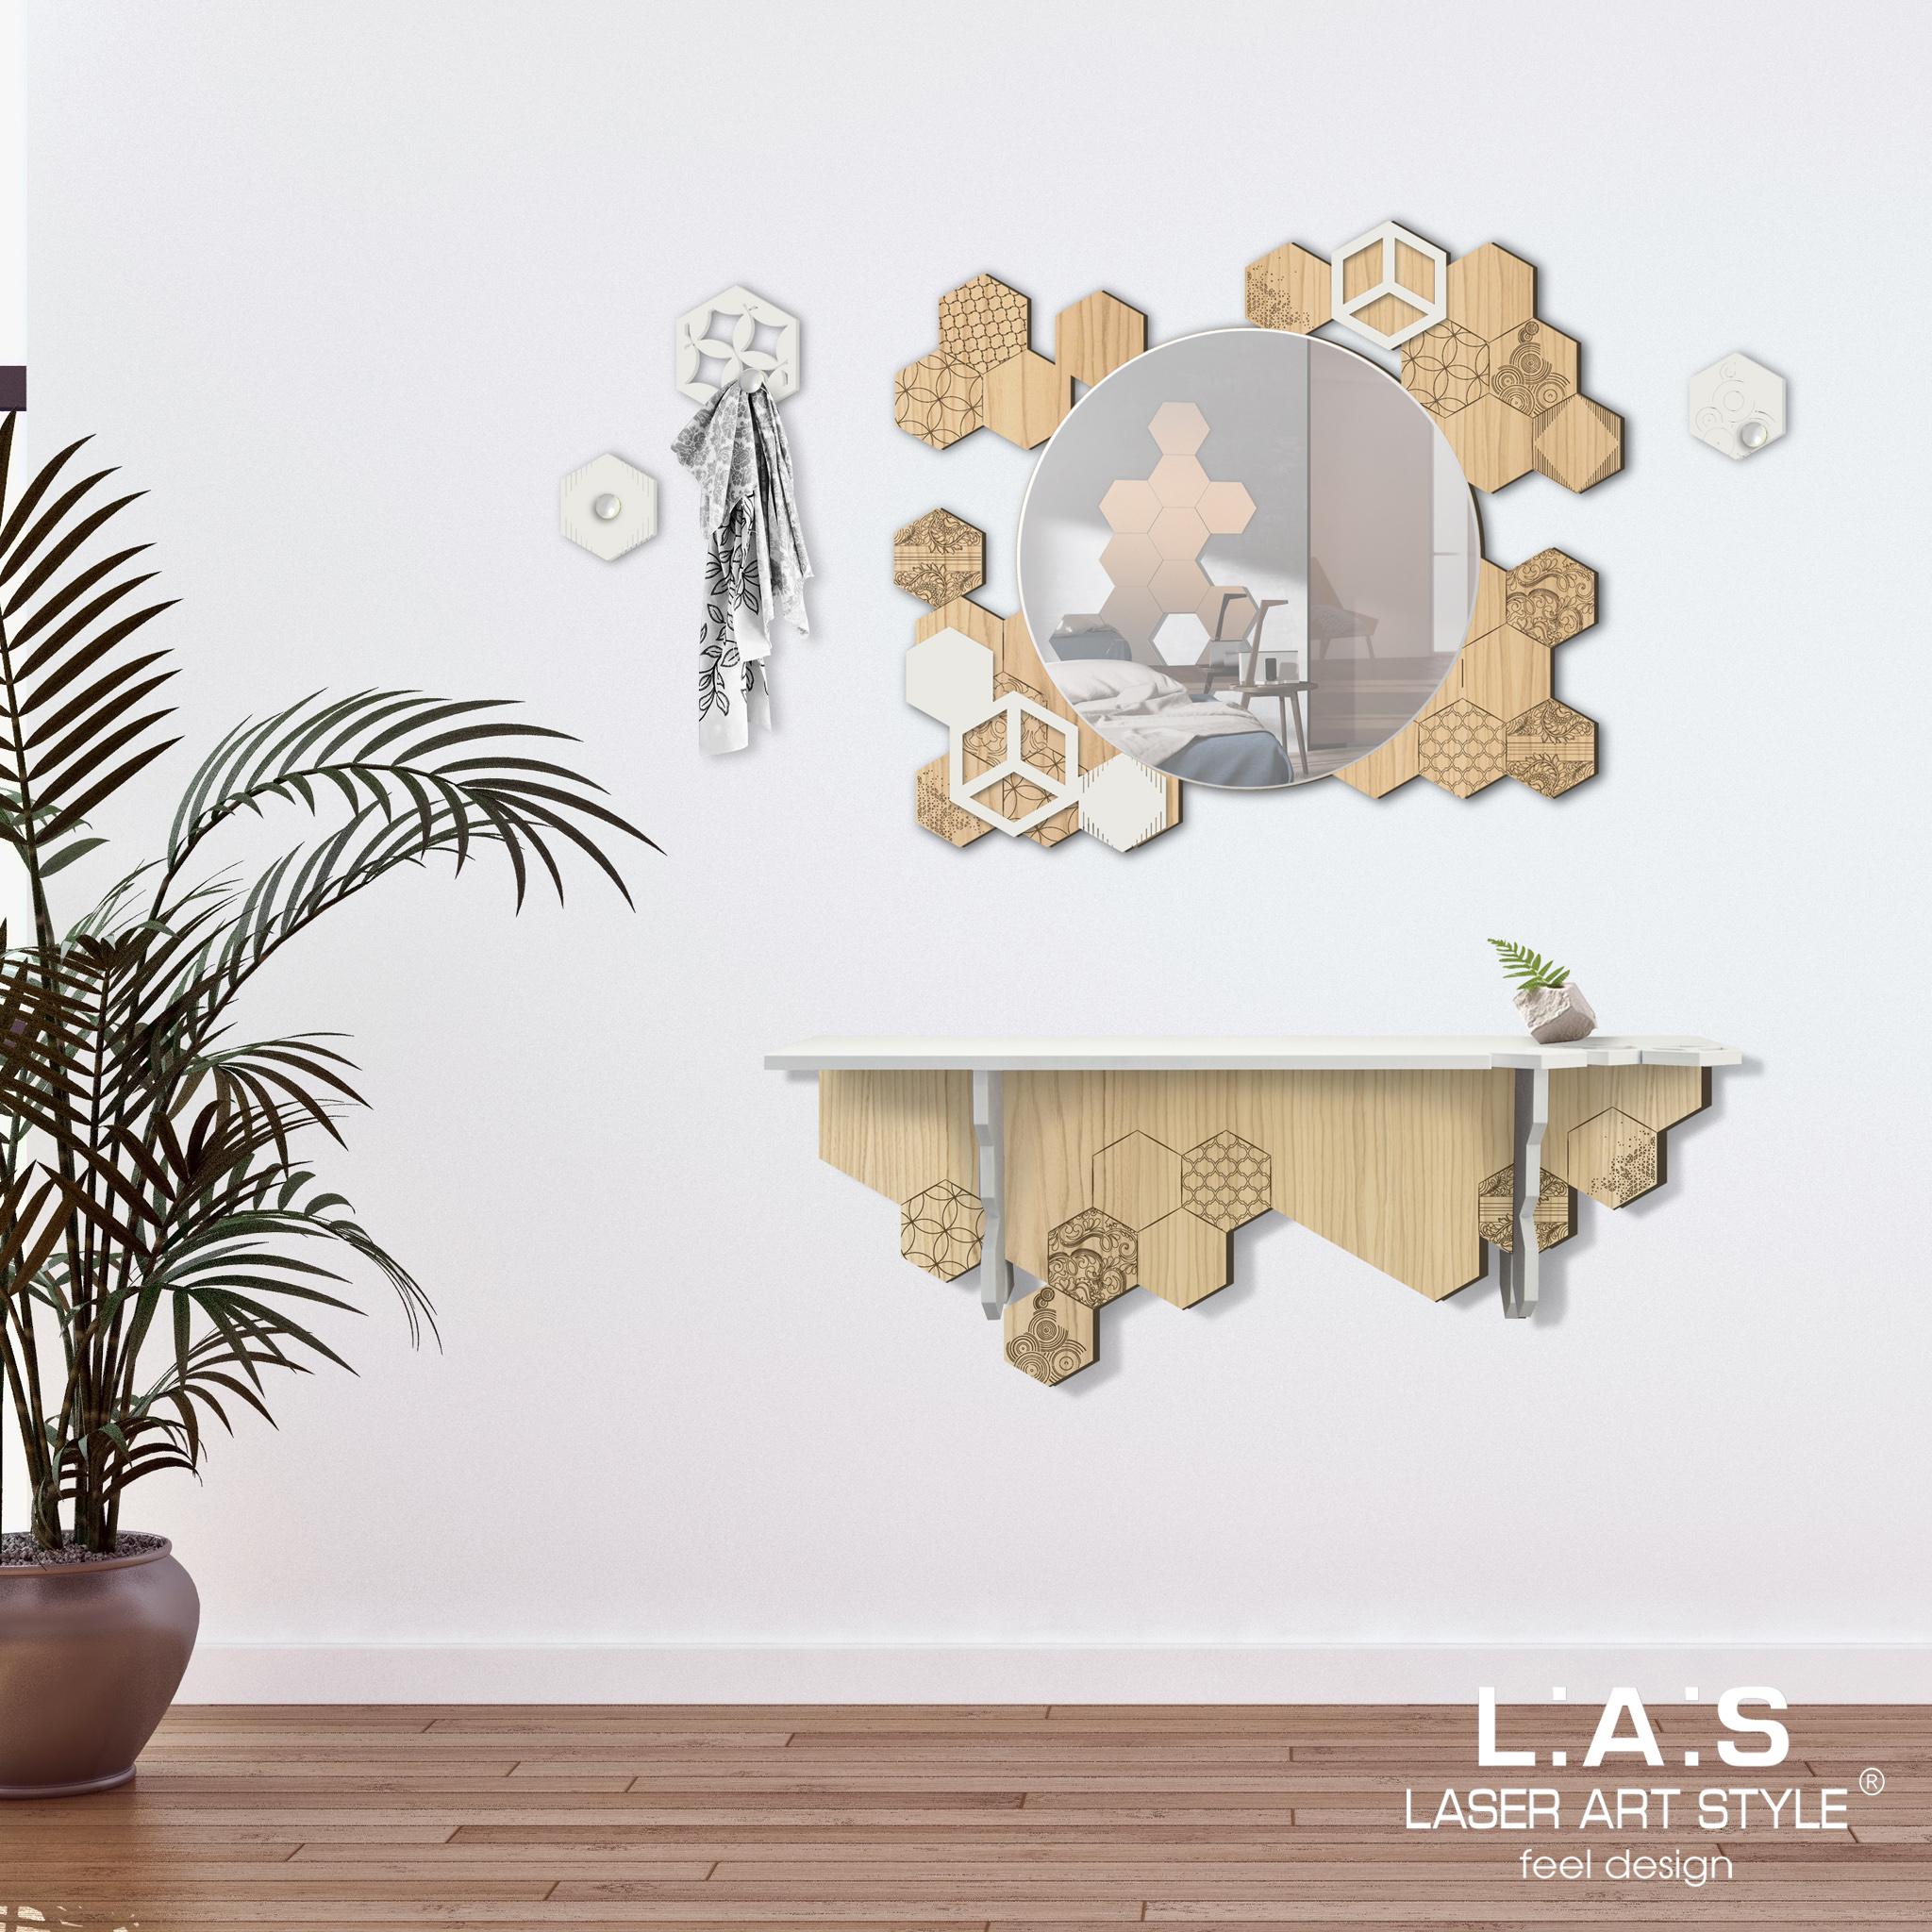 L:A:S - Laser Art Style - CONSOLLE INGRESSO DESIGN ESEGONI – MW-313 PANNA – NATURAL WOOD